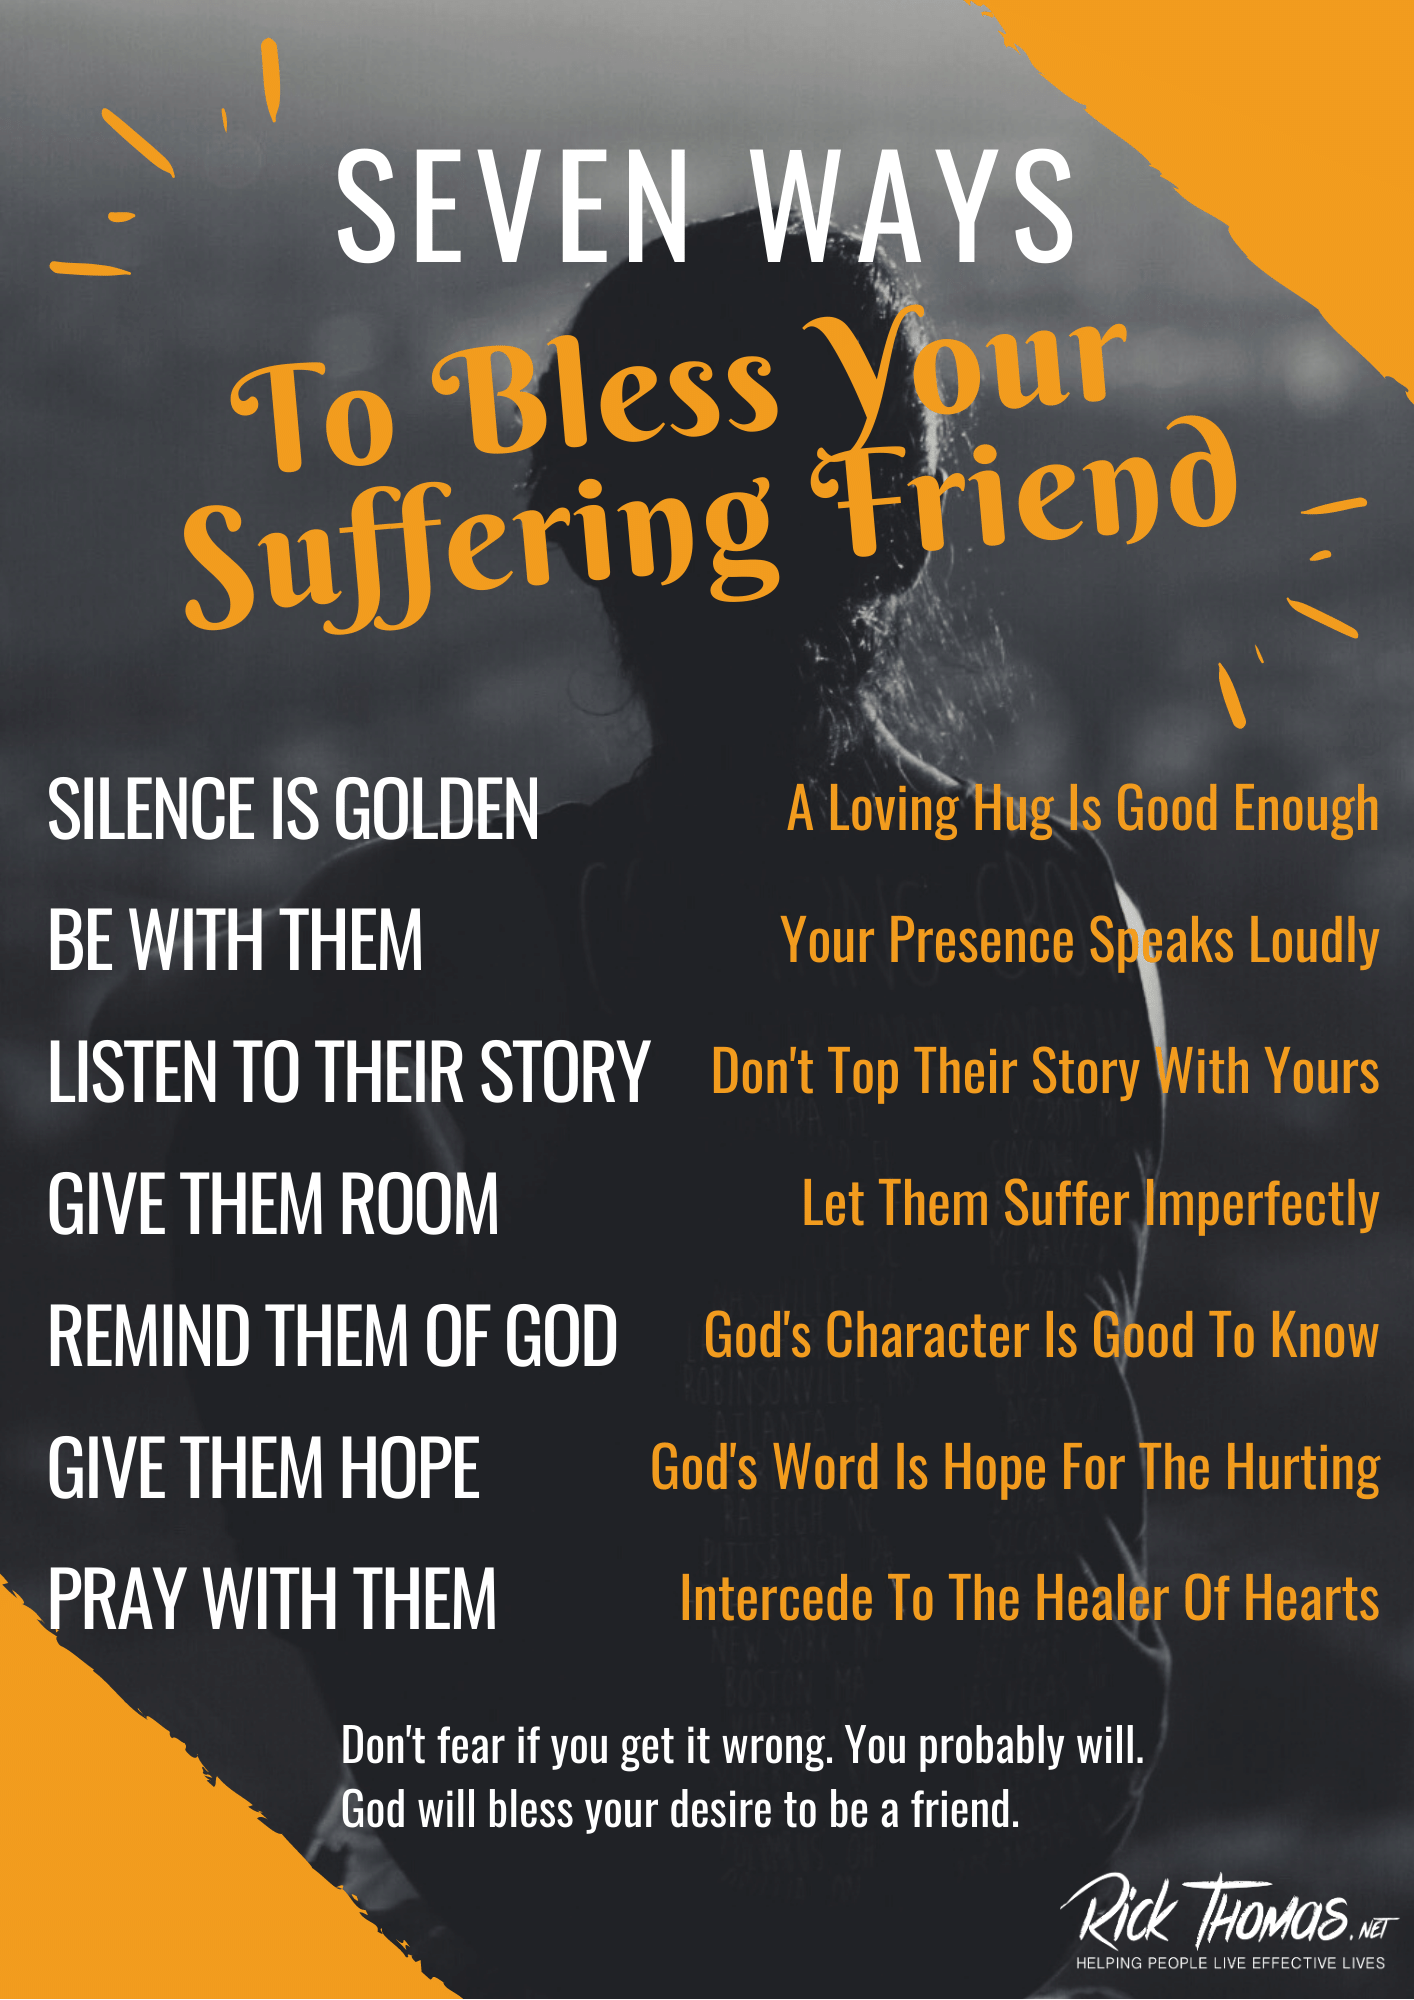 Seven Tips For Your Suffering Friends